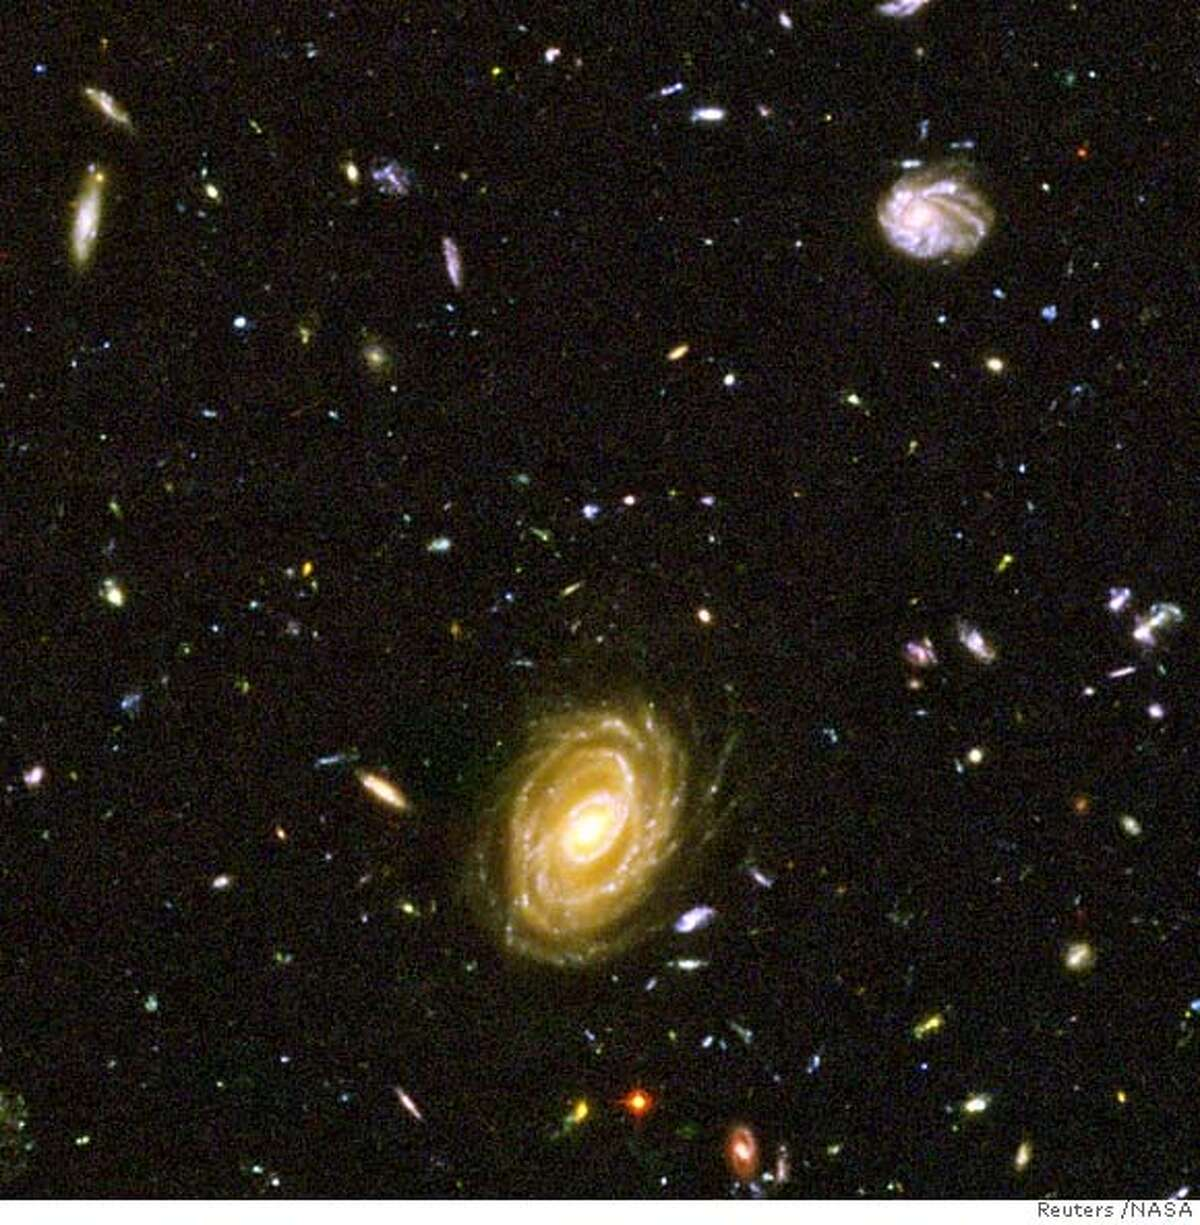 Astronomers using two of NASA's most powerful telescopes said on September 27, 2005, they have detected a